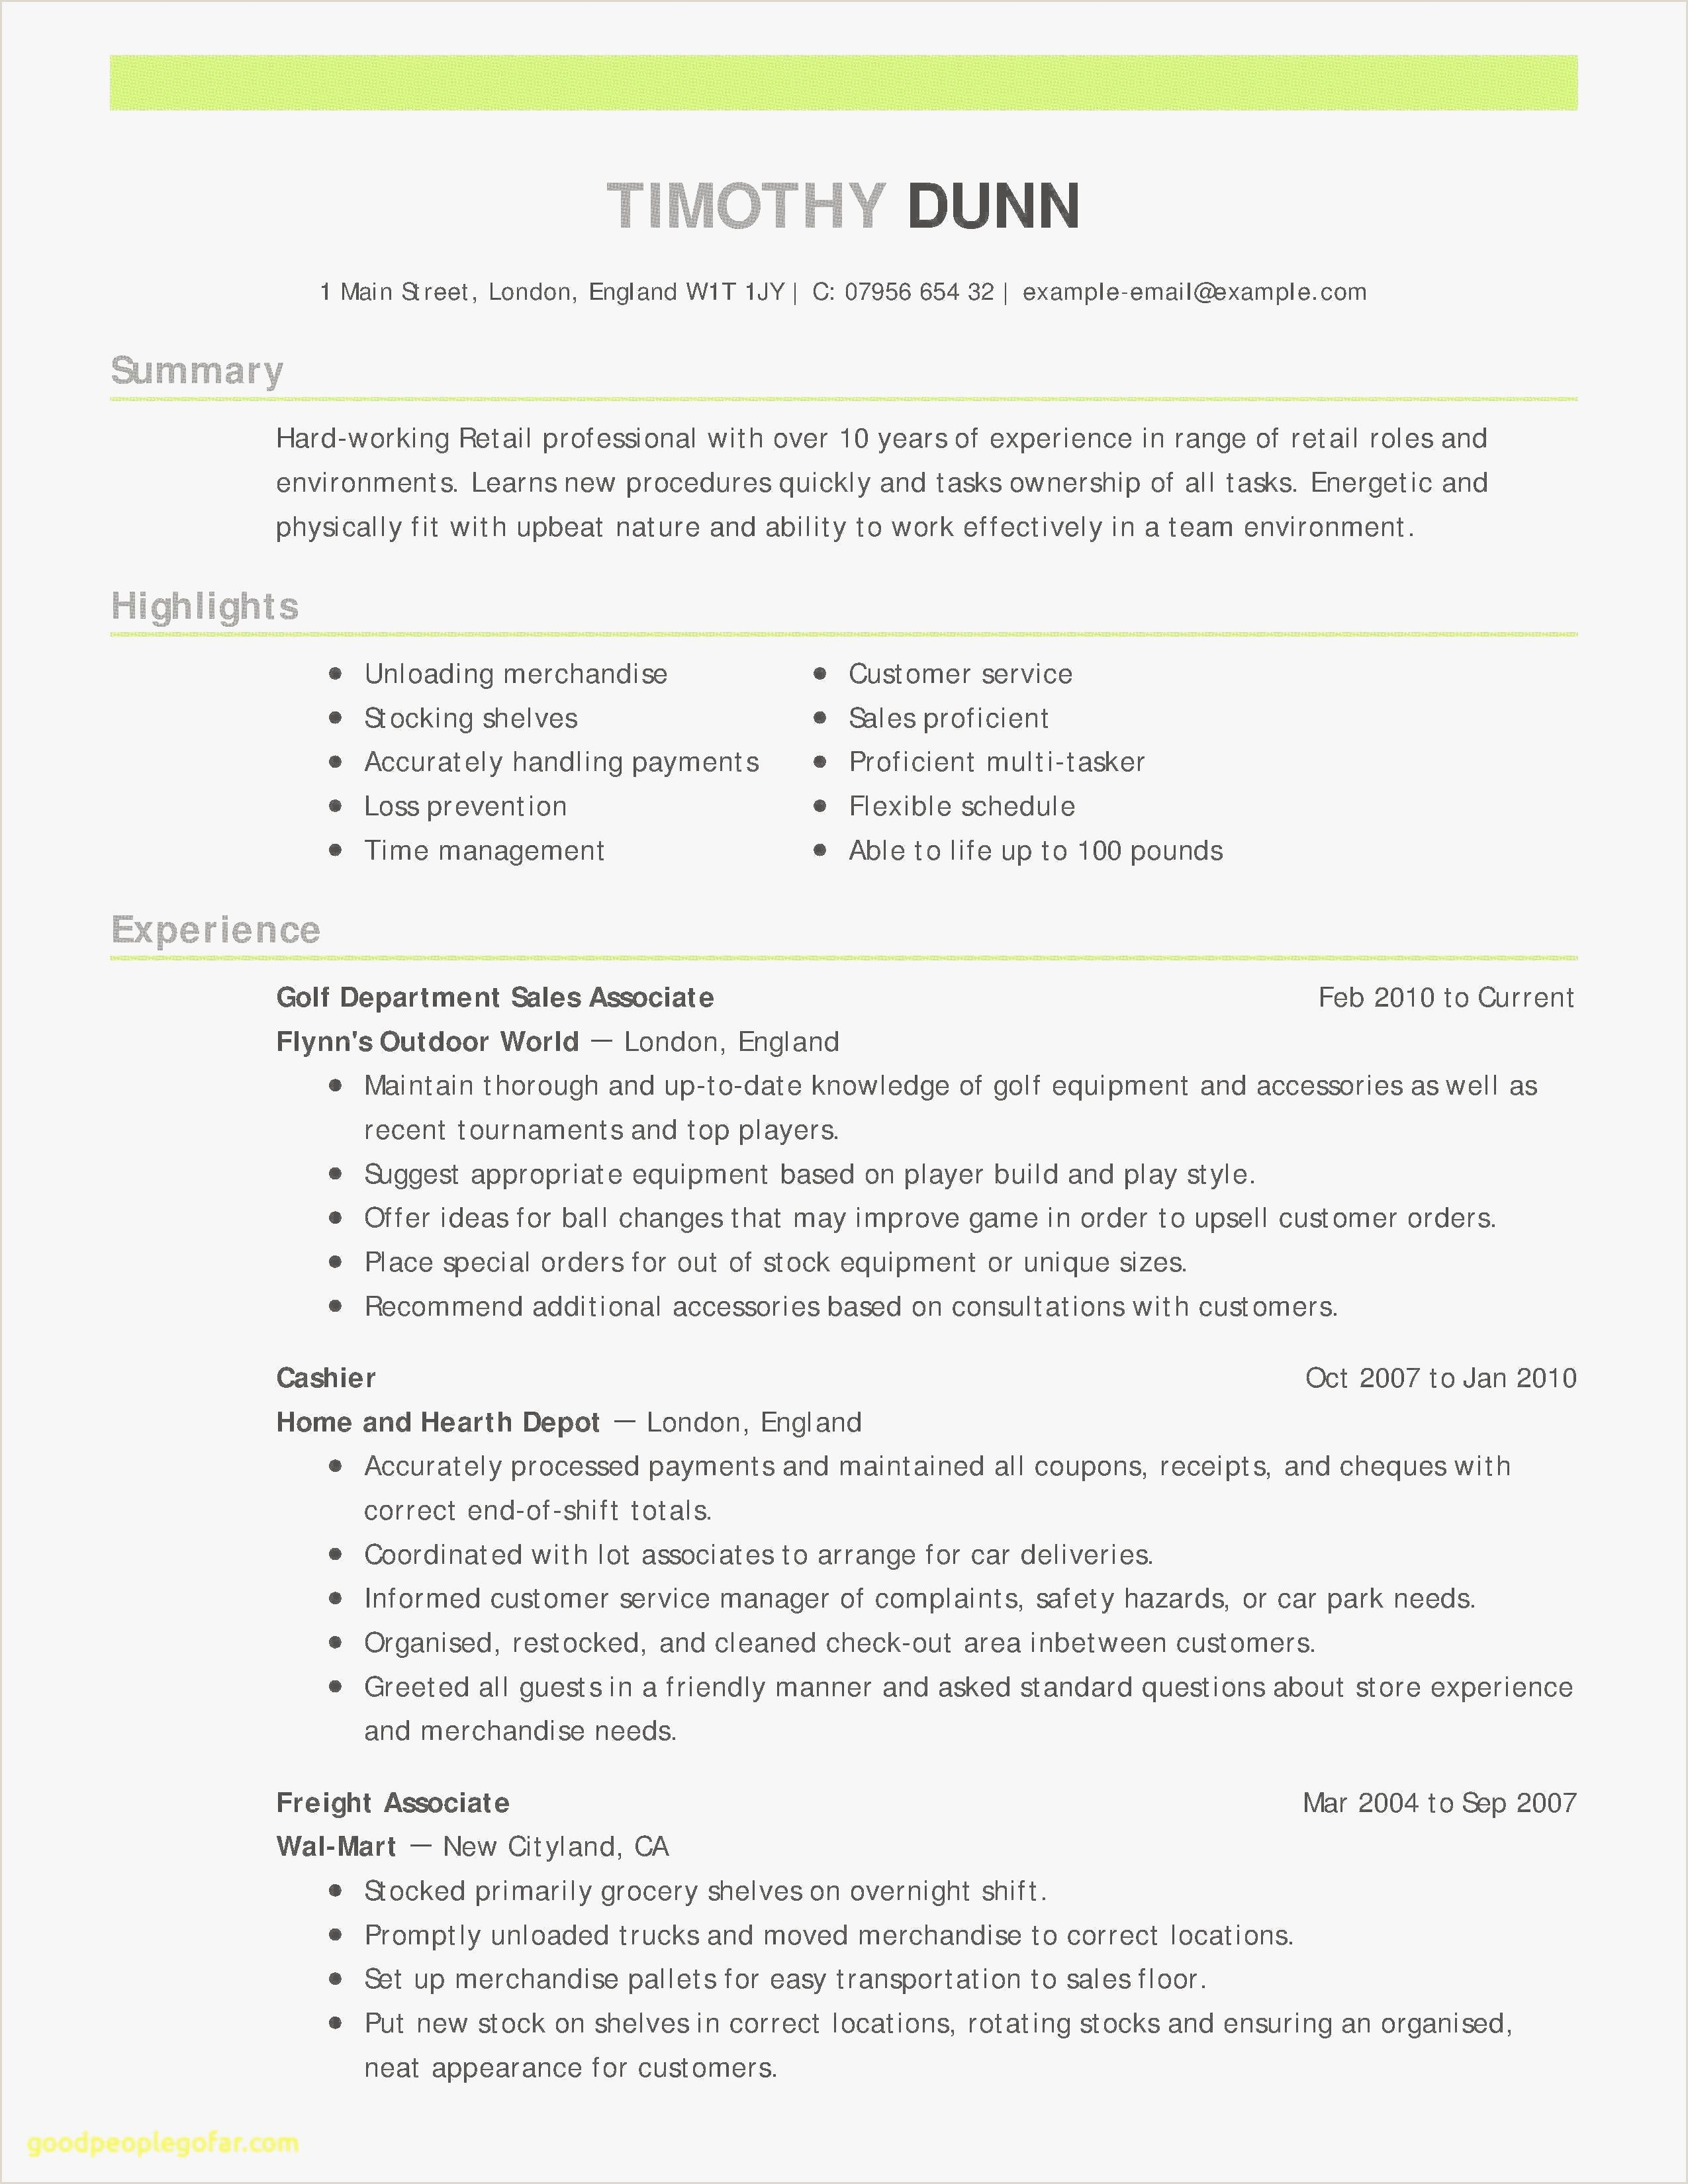 Professional Cv Format Images Resume Examples Resume Summary Examples Basic Resume